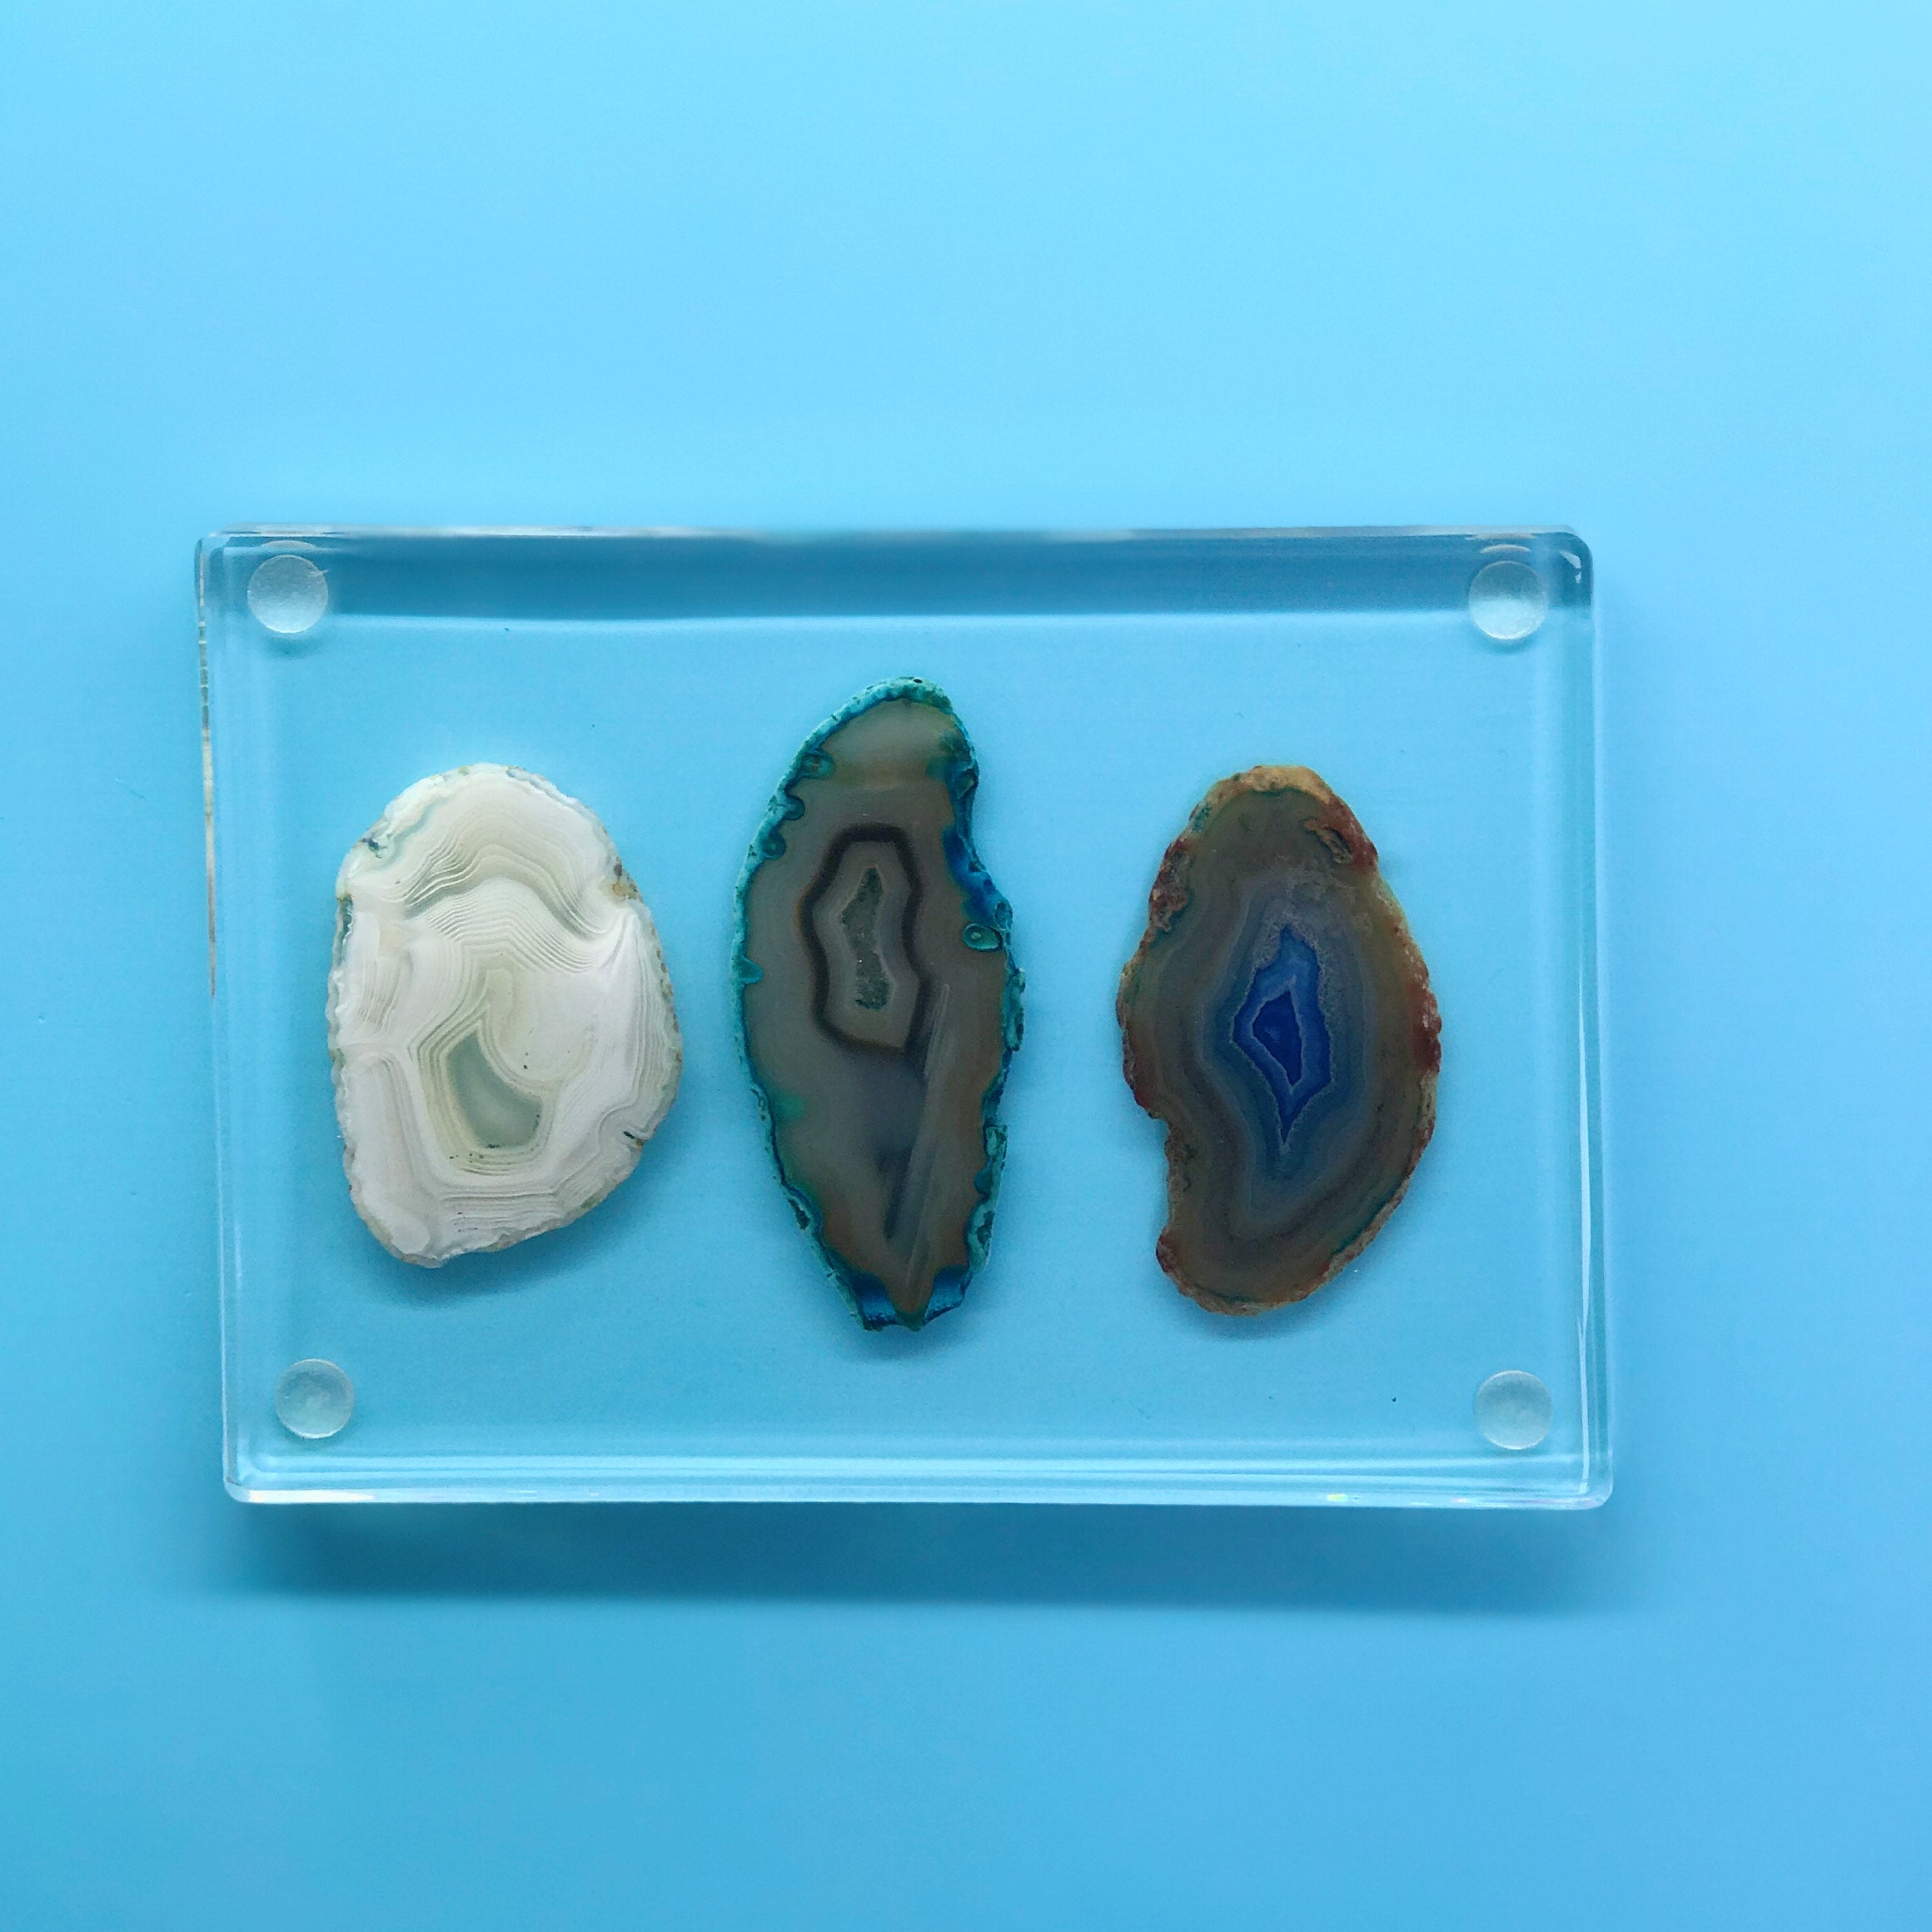 Natural Agate & Resin Tray - Cocus Pocus